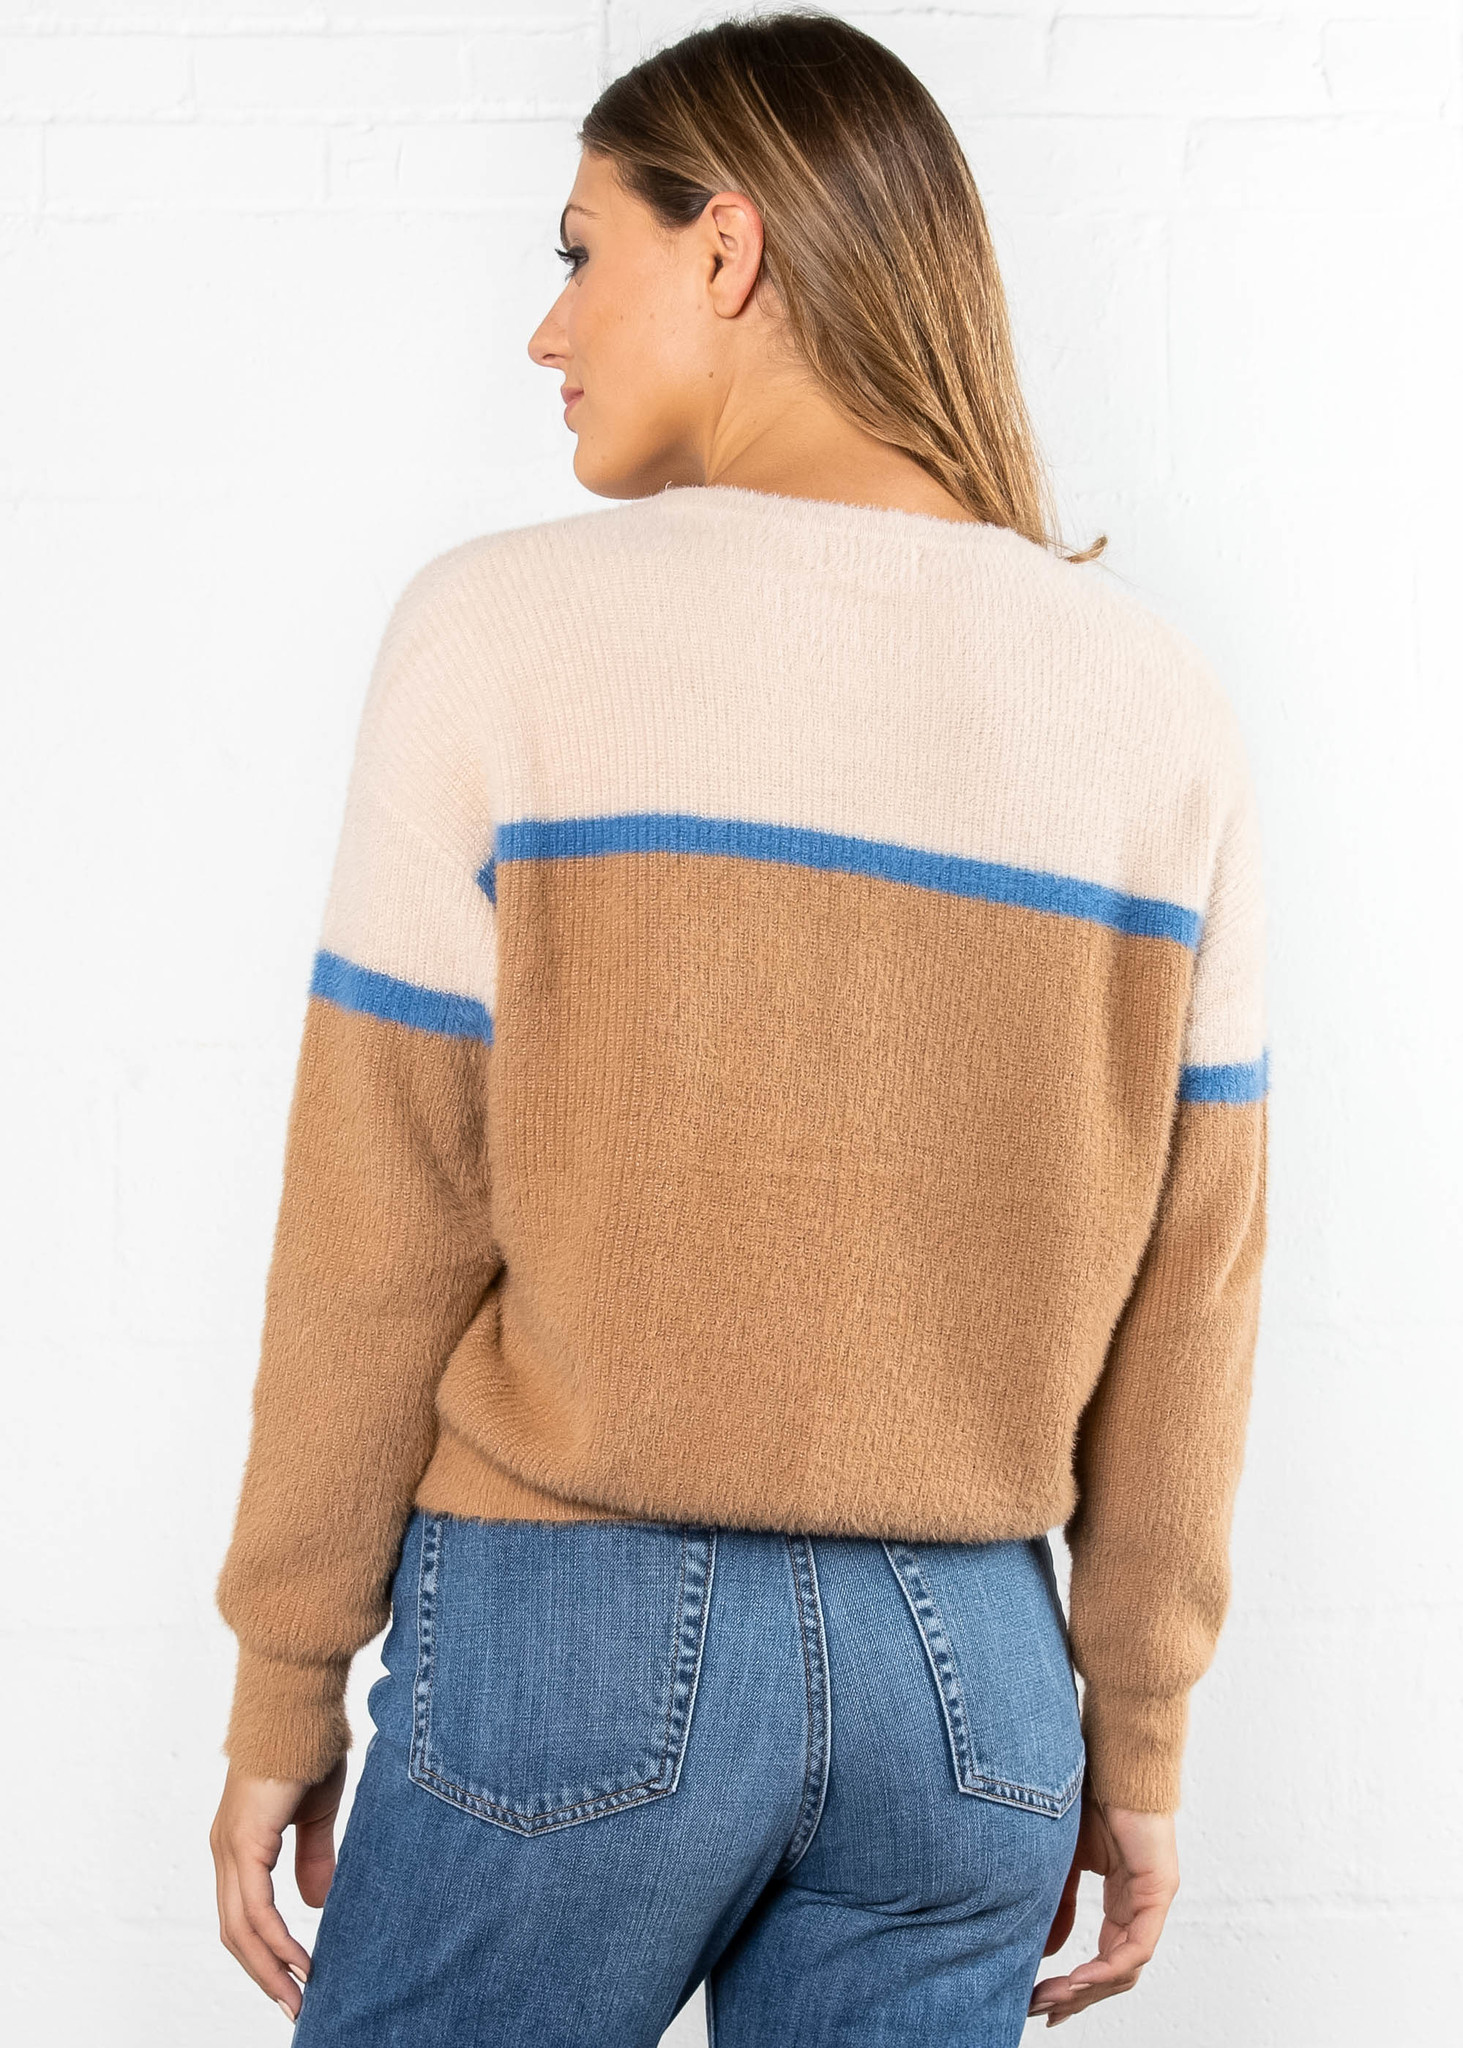 BACK TO SCHOOL SWEATER